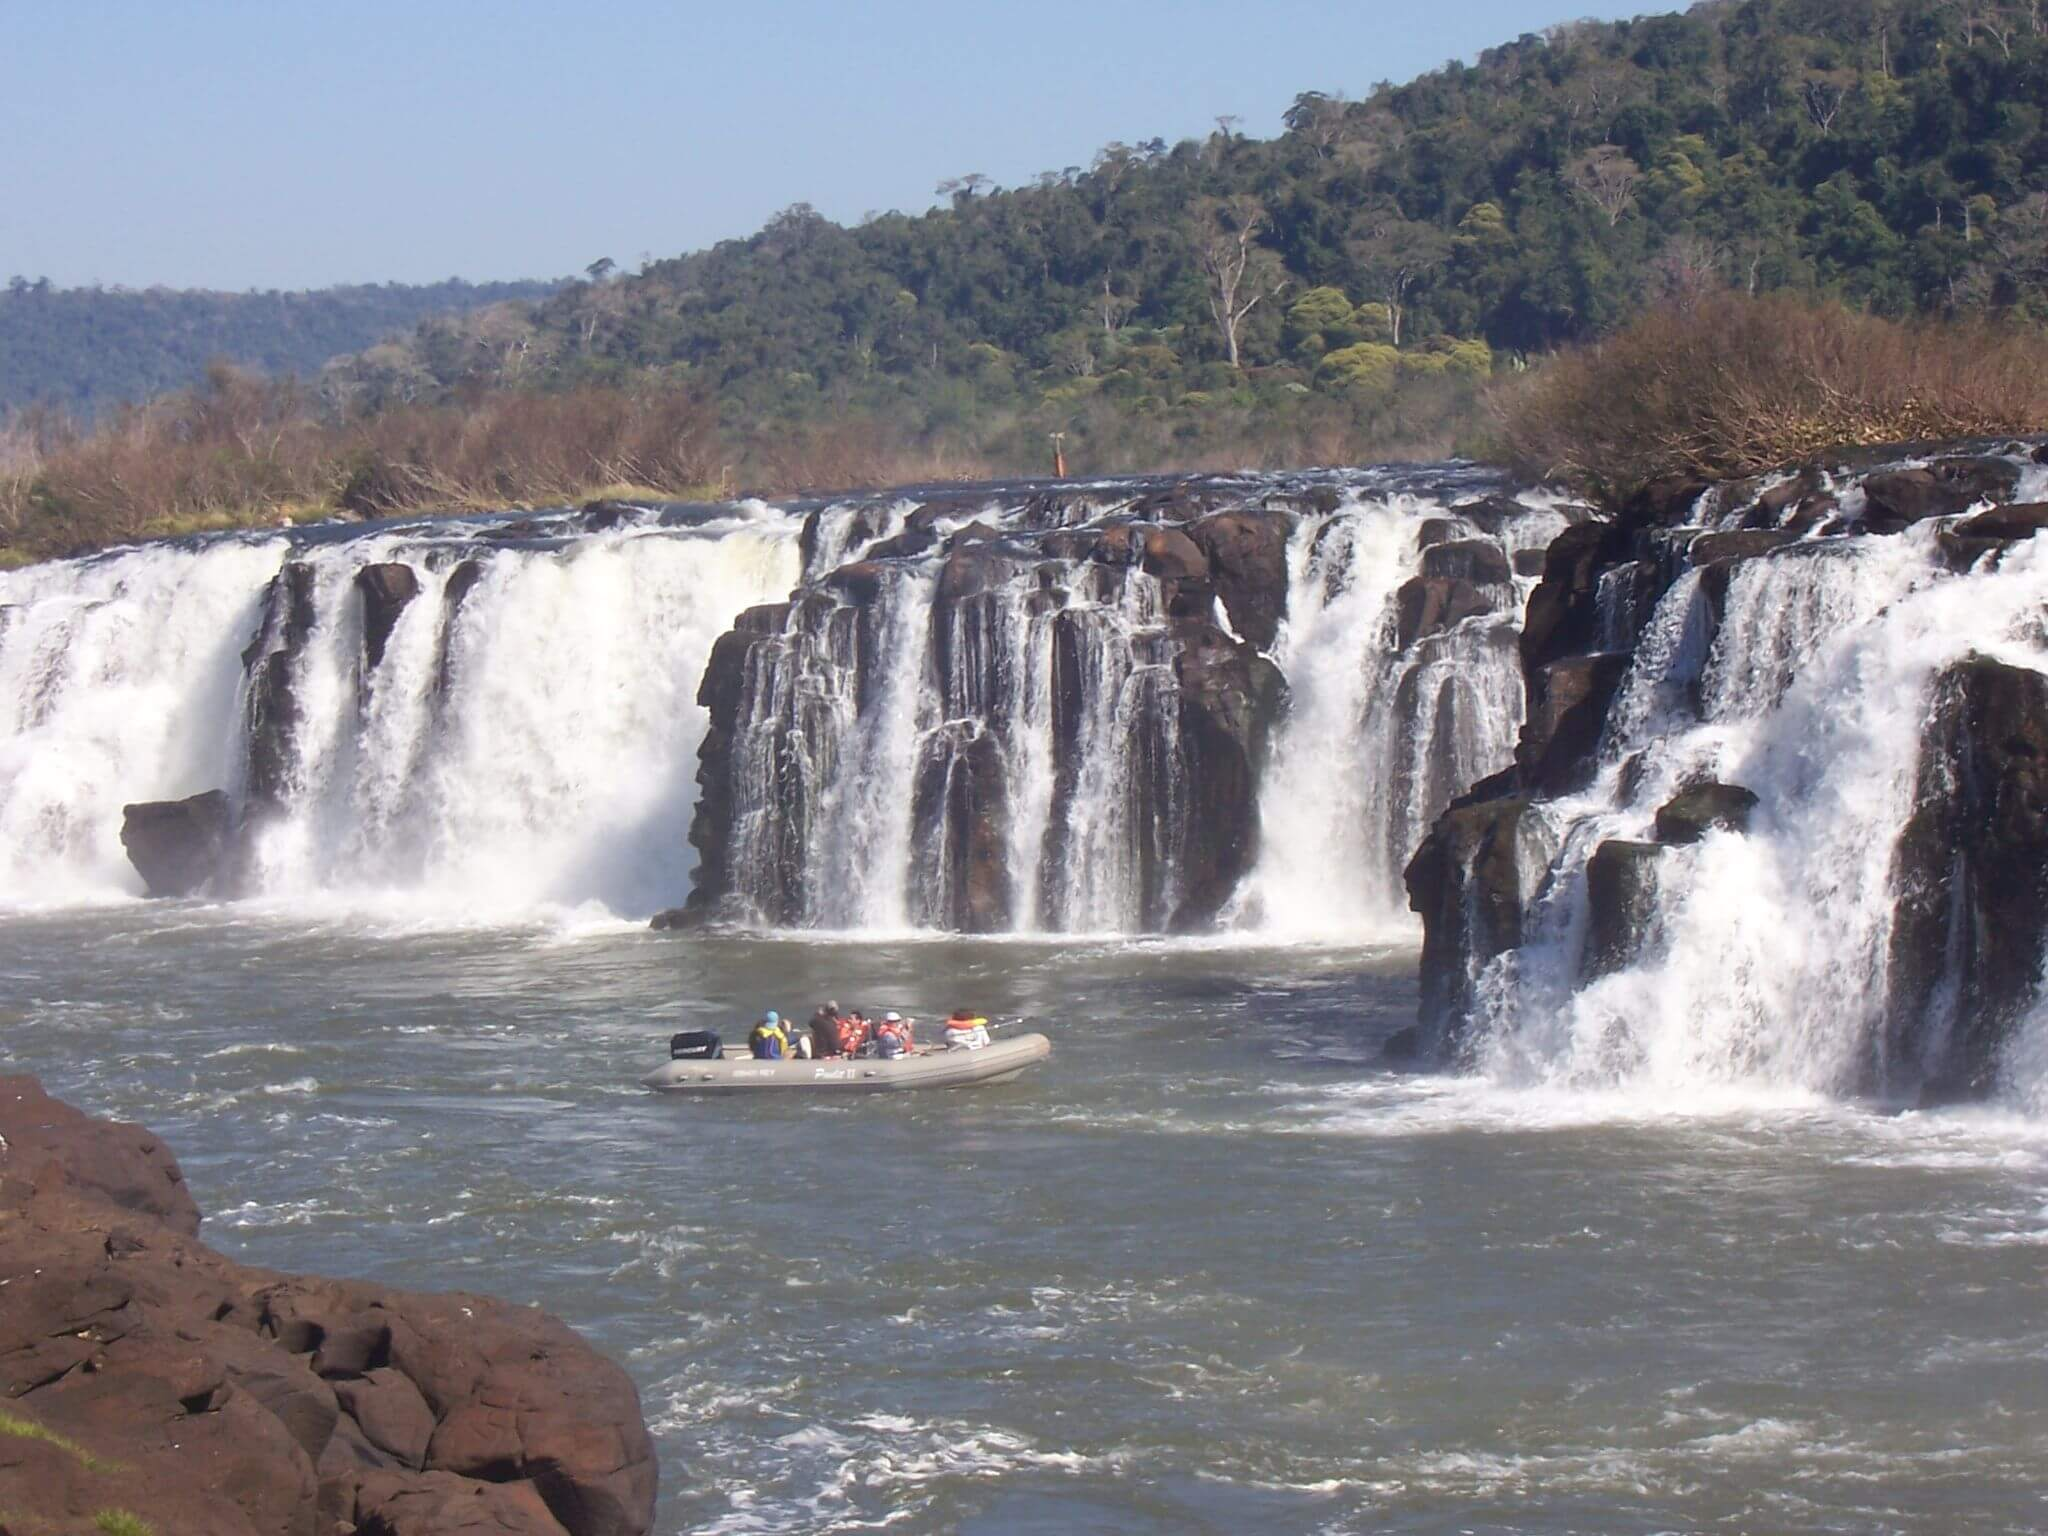 This is what I expected to see, as you can see in the other photos that I took, I wasn't so lucky. This is what the Mocona Falls look like when the water levels are VERY low. | Source: Leandro Kibisz ( Loco085 ) [ CC BY-SA 2.5 ]